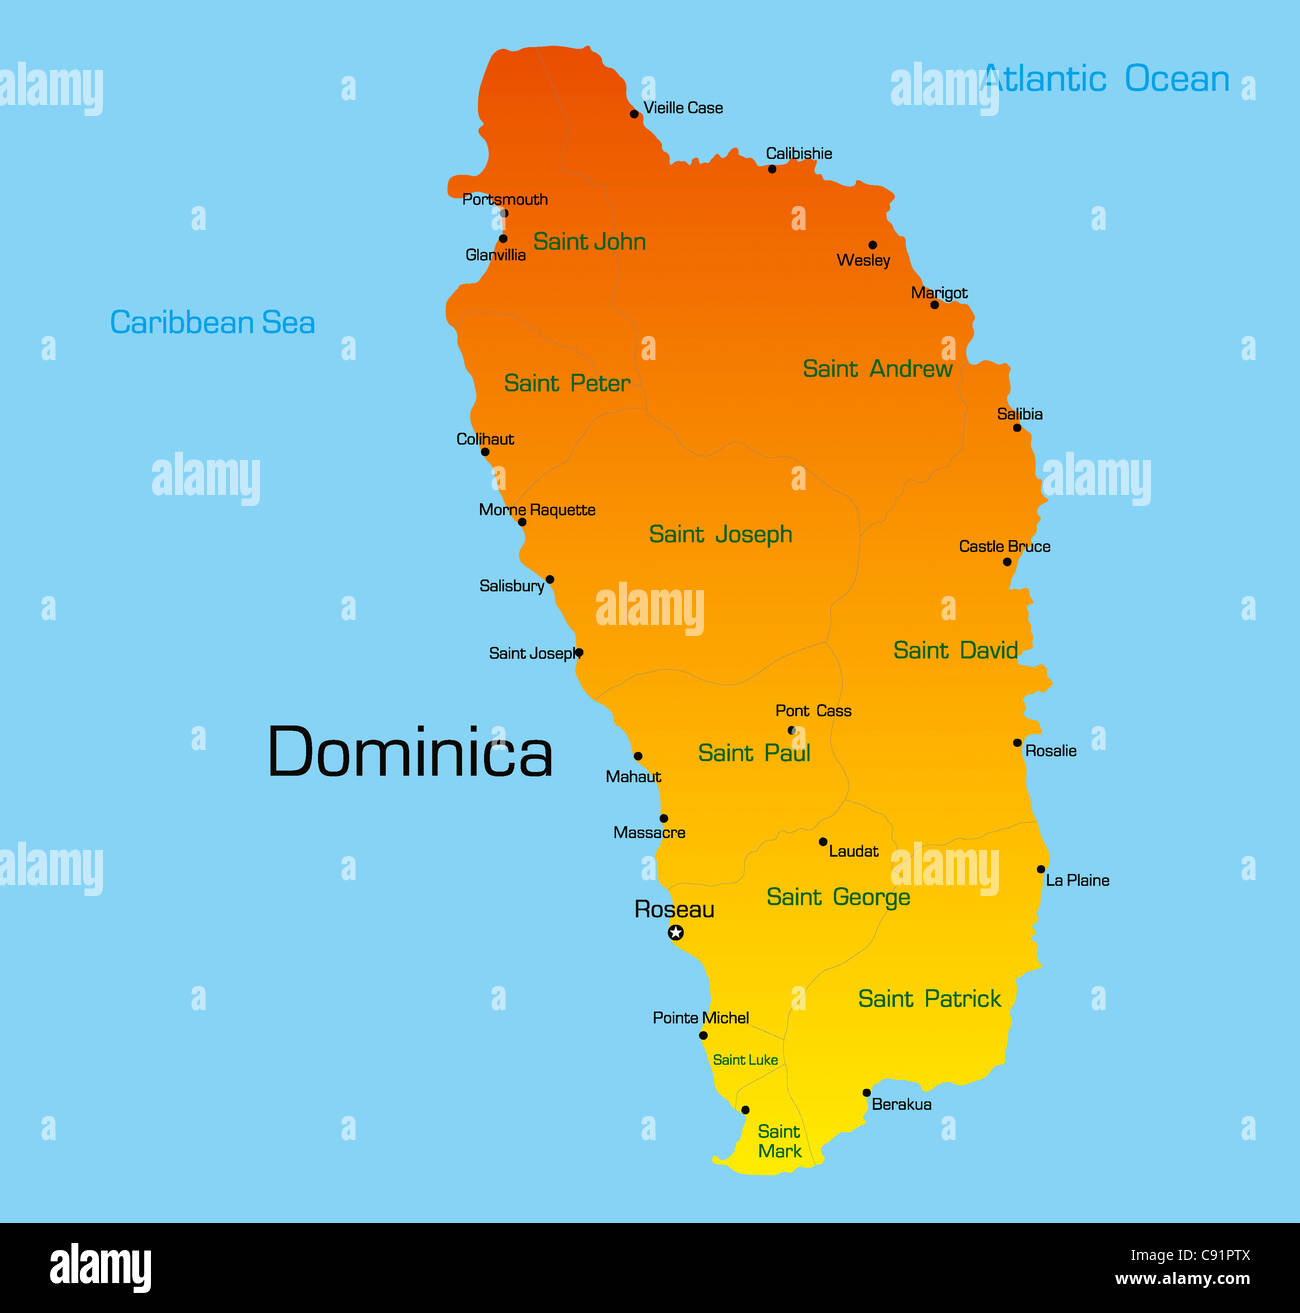 Vector color map of dominica country Stock Photo: 39992538 ... on fiji map, el salvador map, st. lucia map, grenada map, martinique map, costa rica map, georgia country map, cayman islands, dominican republic, st thomas map, saint lucia, iceland map, malta map, zimbabwe map, the bahamas, americas map, montserrat map, trinidad and tobago, barbados map, turks and caicos islands, maldives map, antigua and barbuda, caribbean map, st. kitts map, haiti map, jamaica map, dominican republic map,